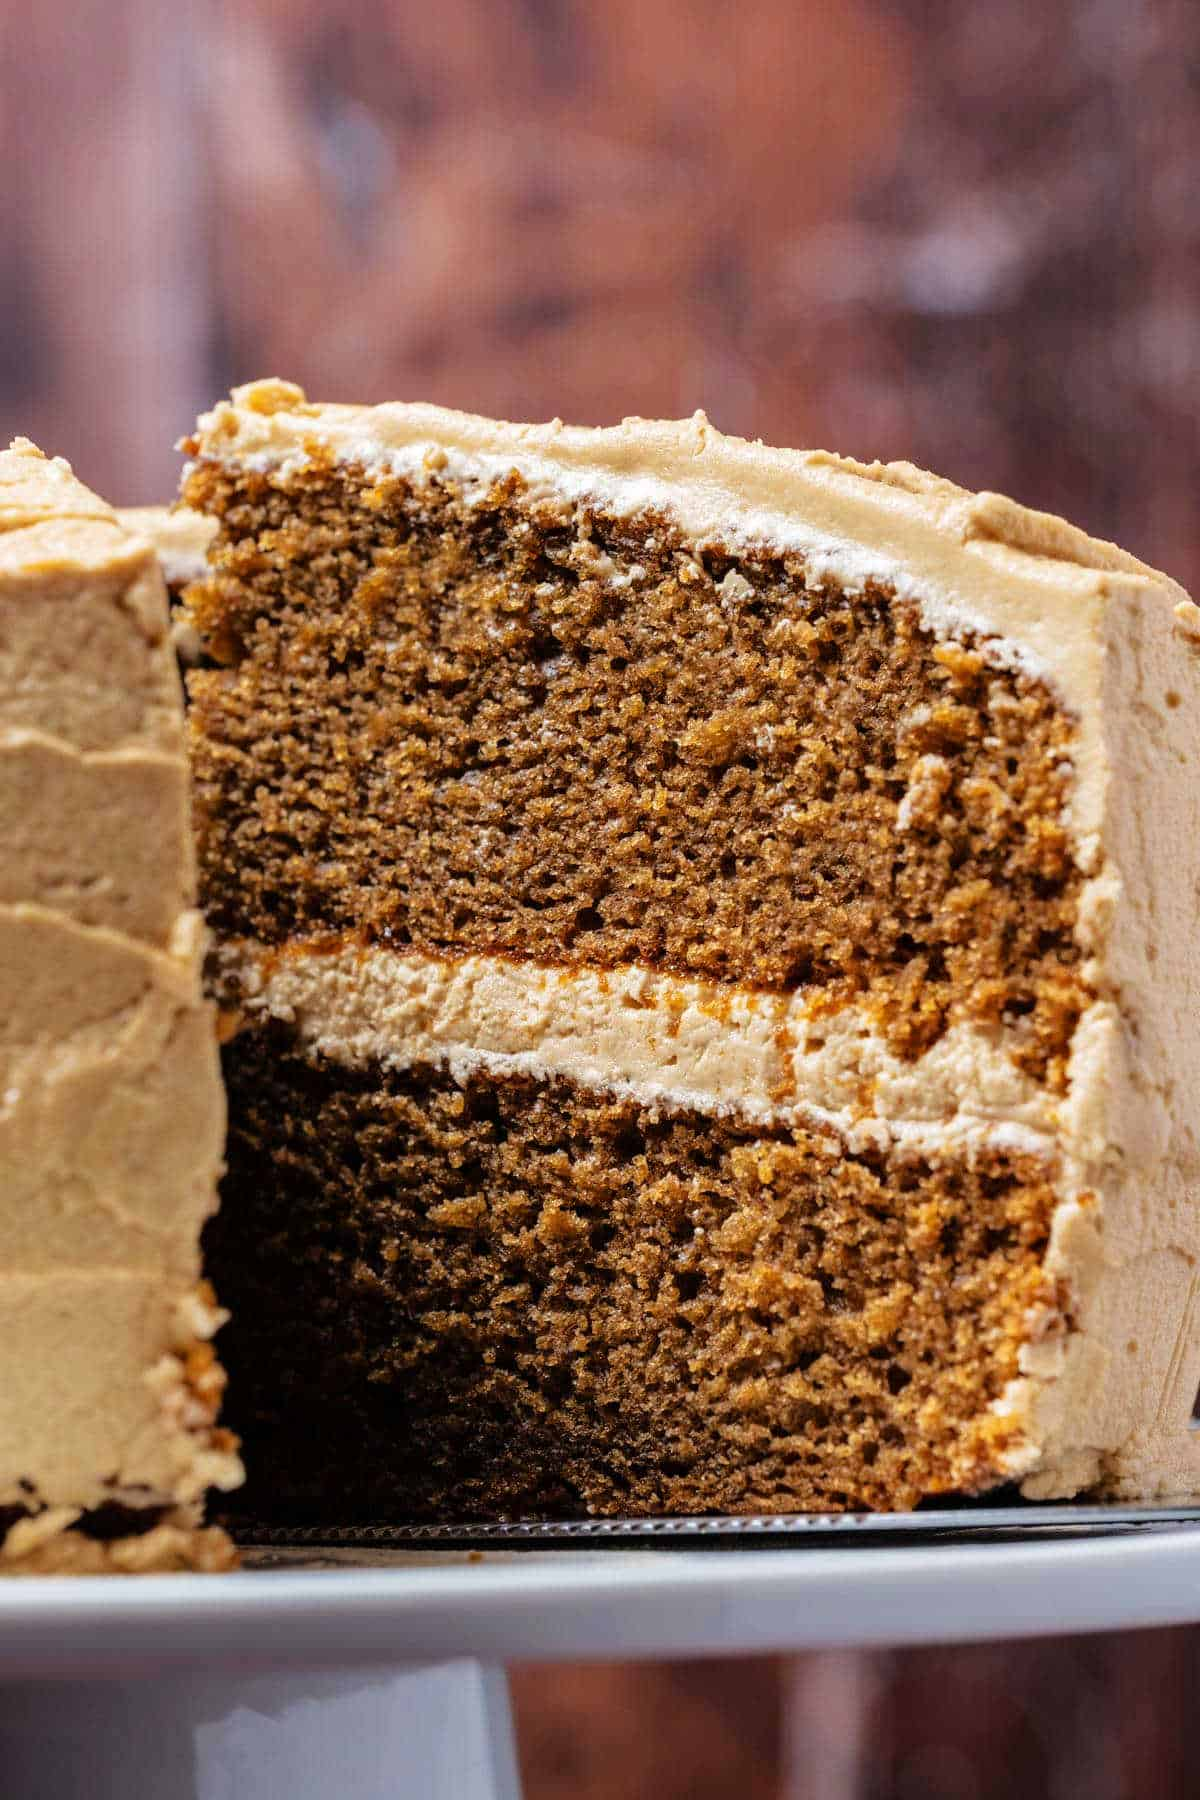 Slice of coffee cake on a cake lifter.